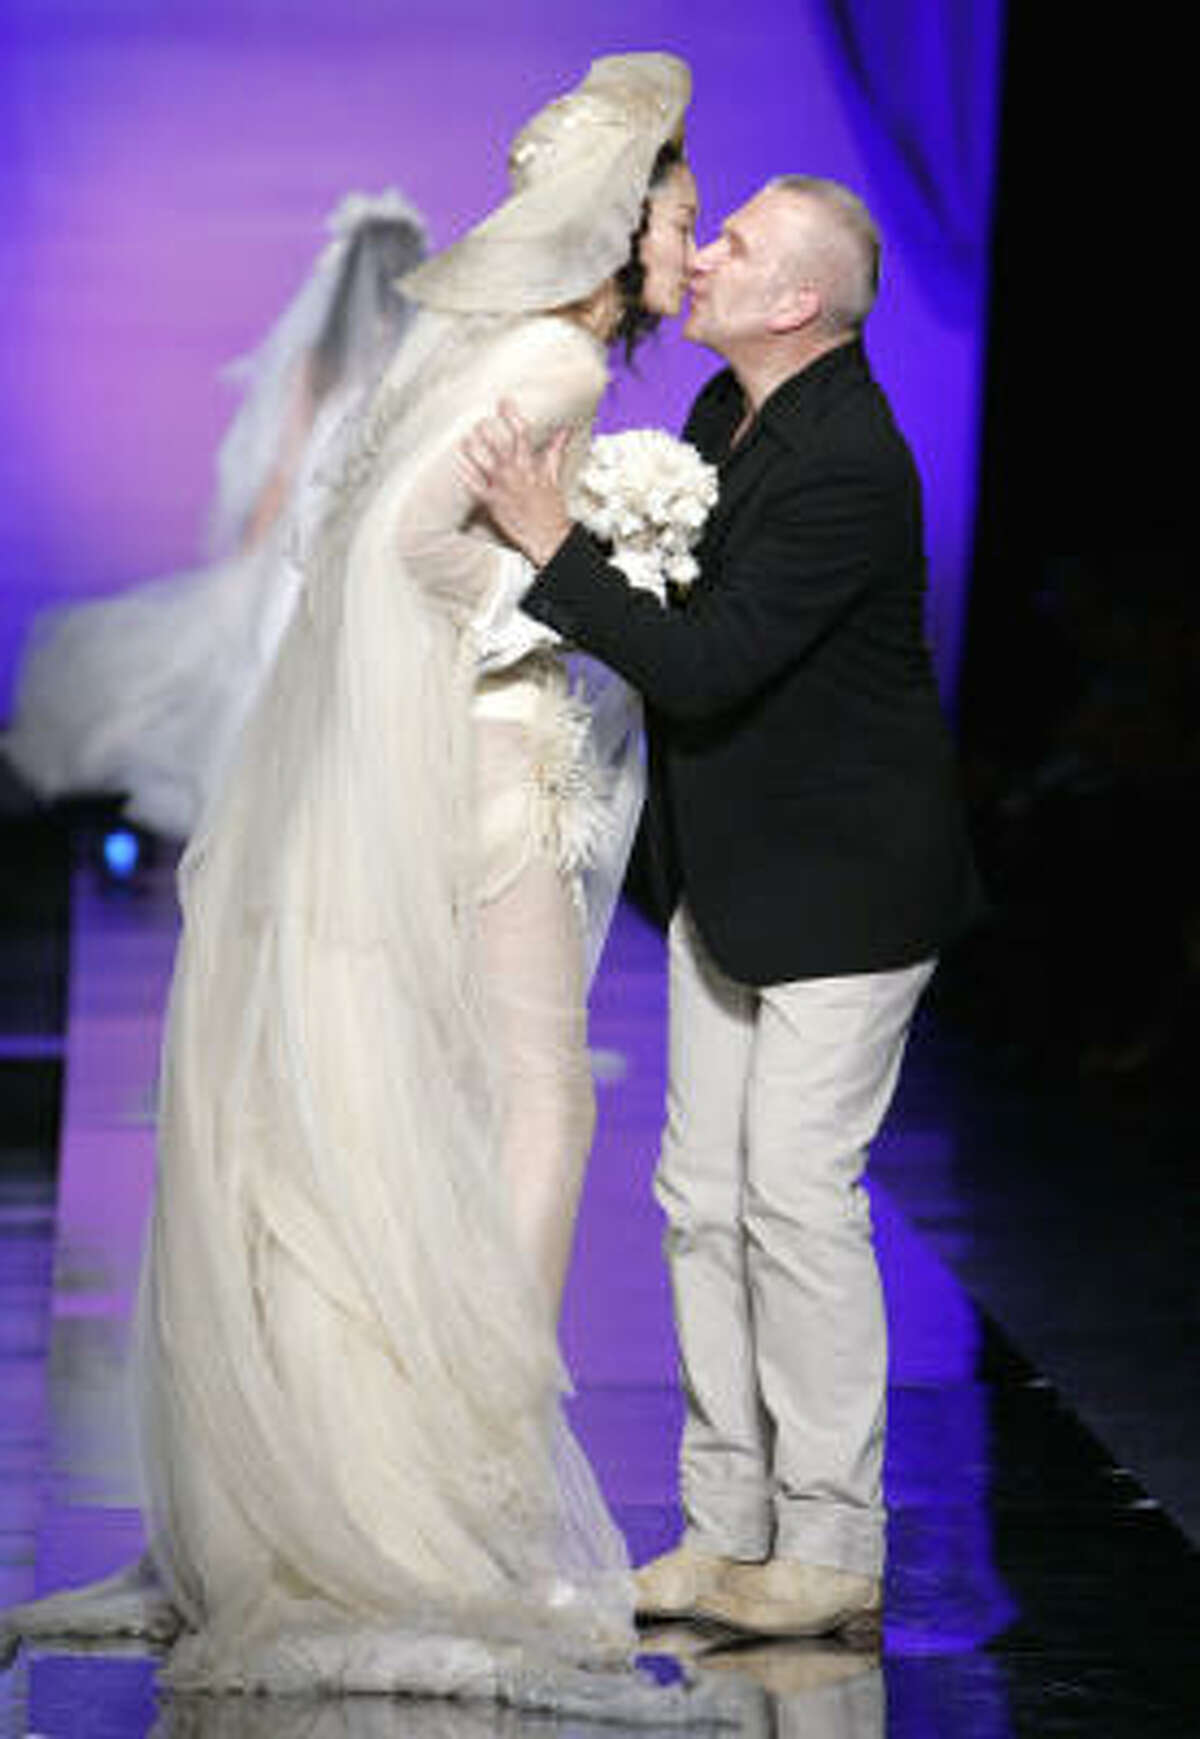 French fashion designer Jean-Paul Gaultier kisses a model in a wedding dress.